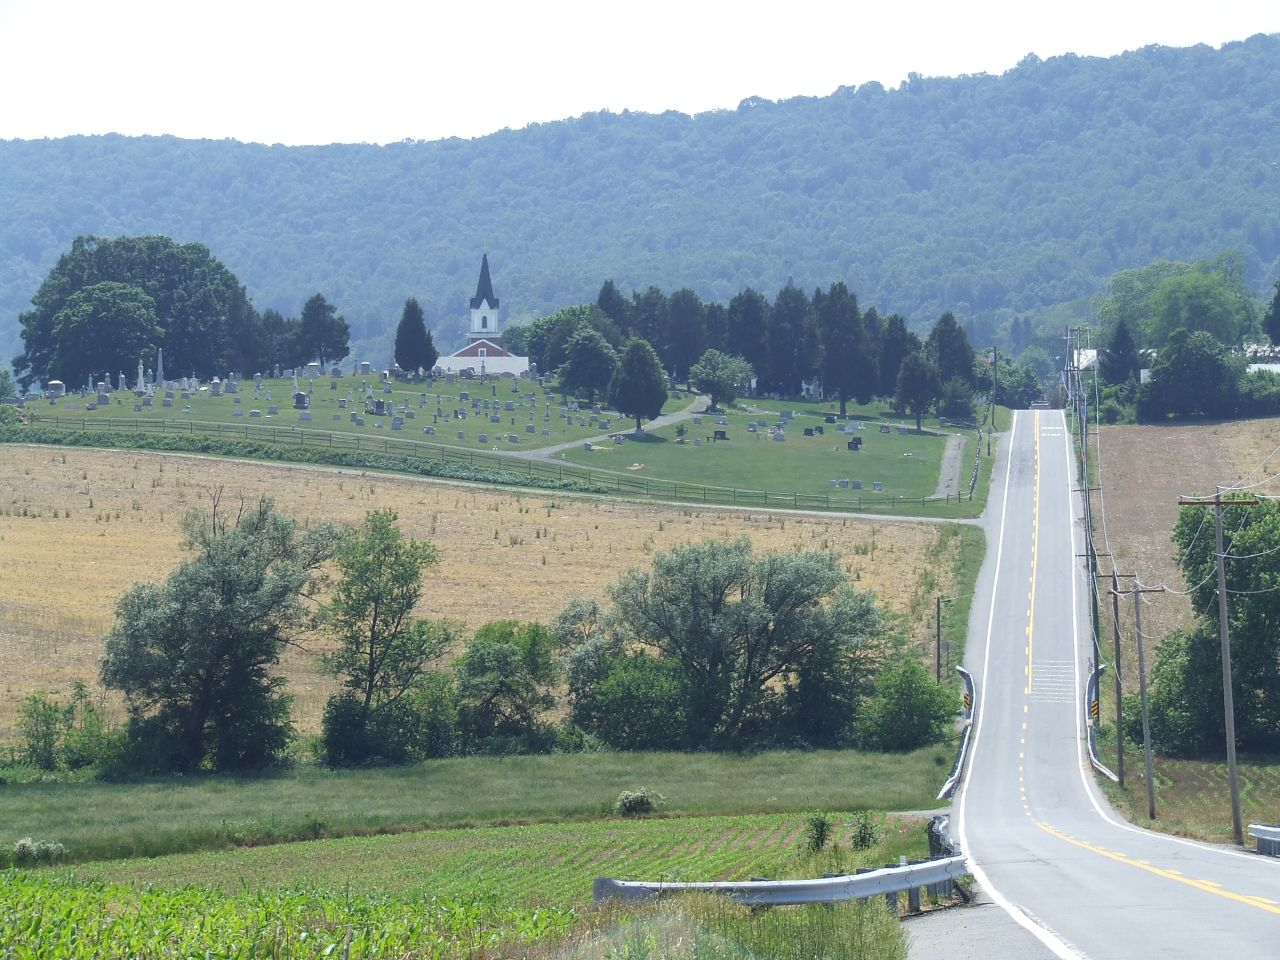 File:Burkittsville MD - Maryland Route 17.jpg - Wikipedia, the ...